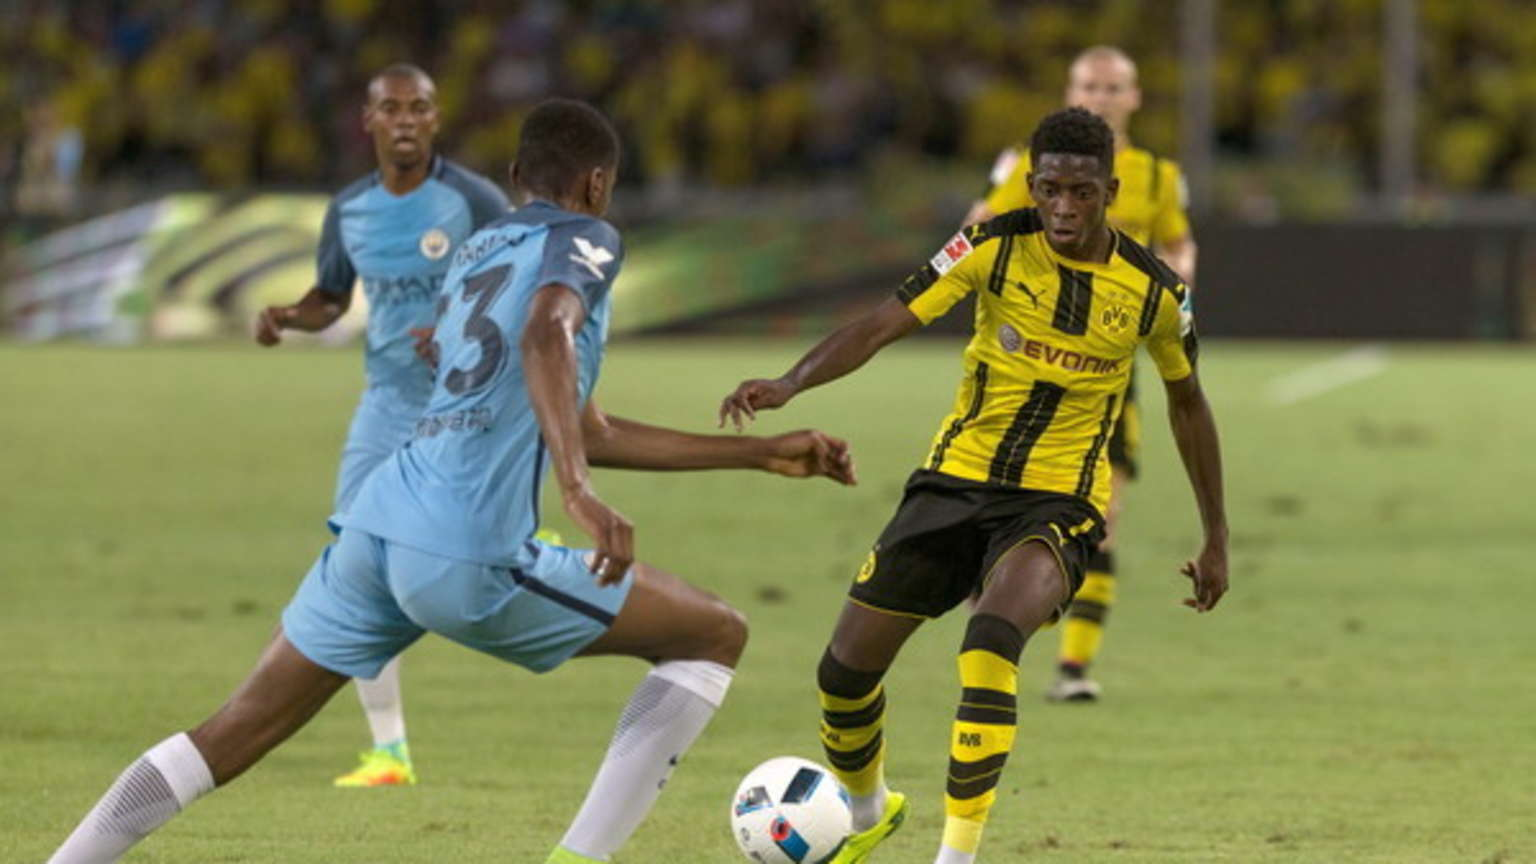 Video: Borussia Dortmund vs Manchester City